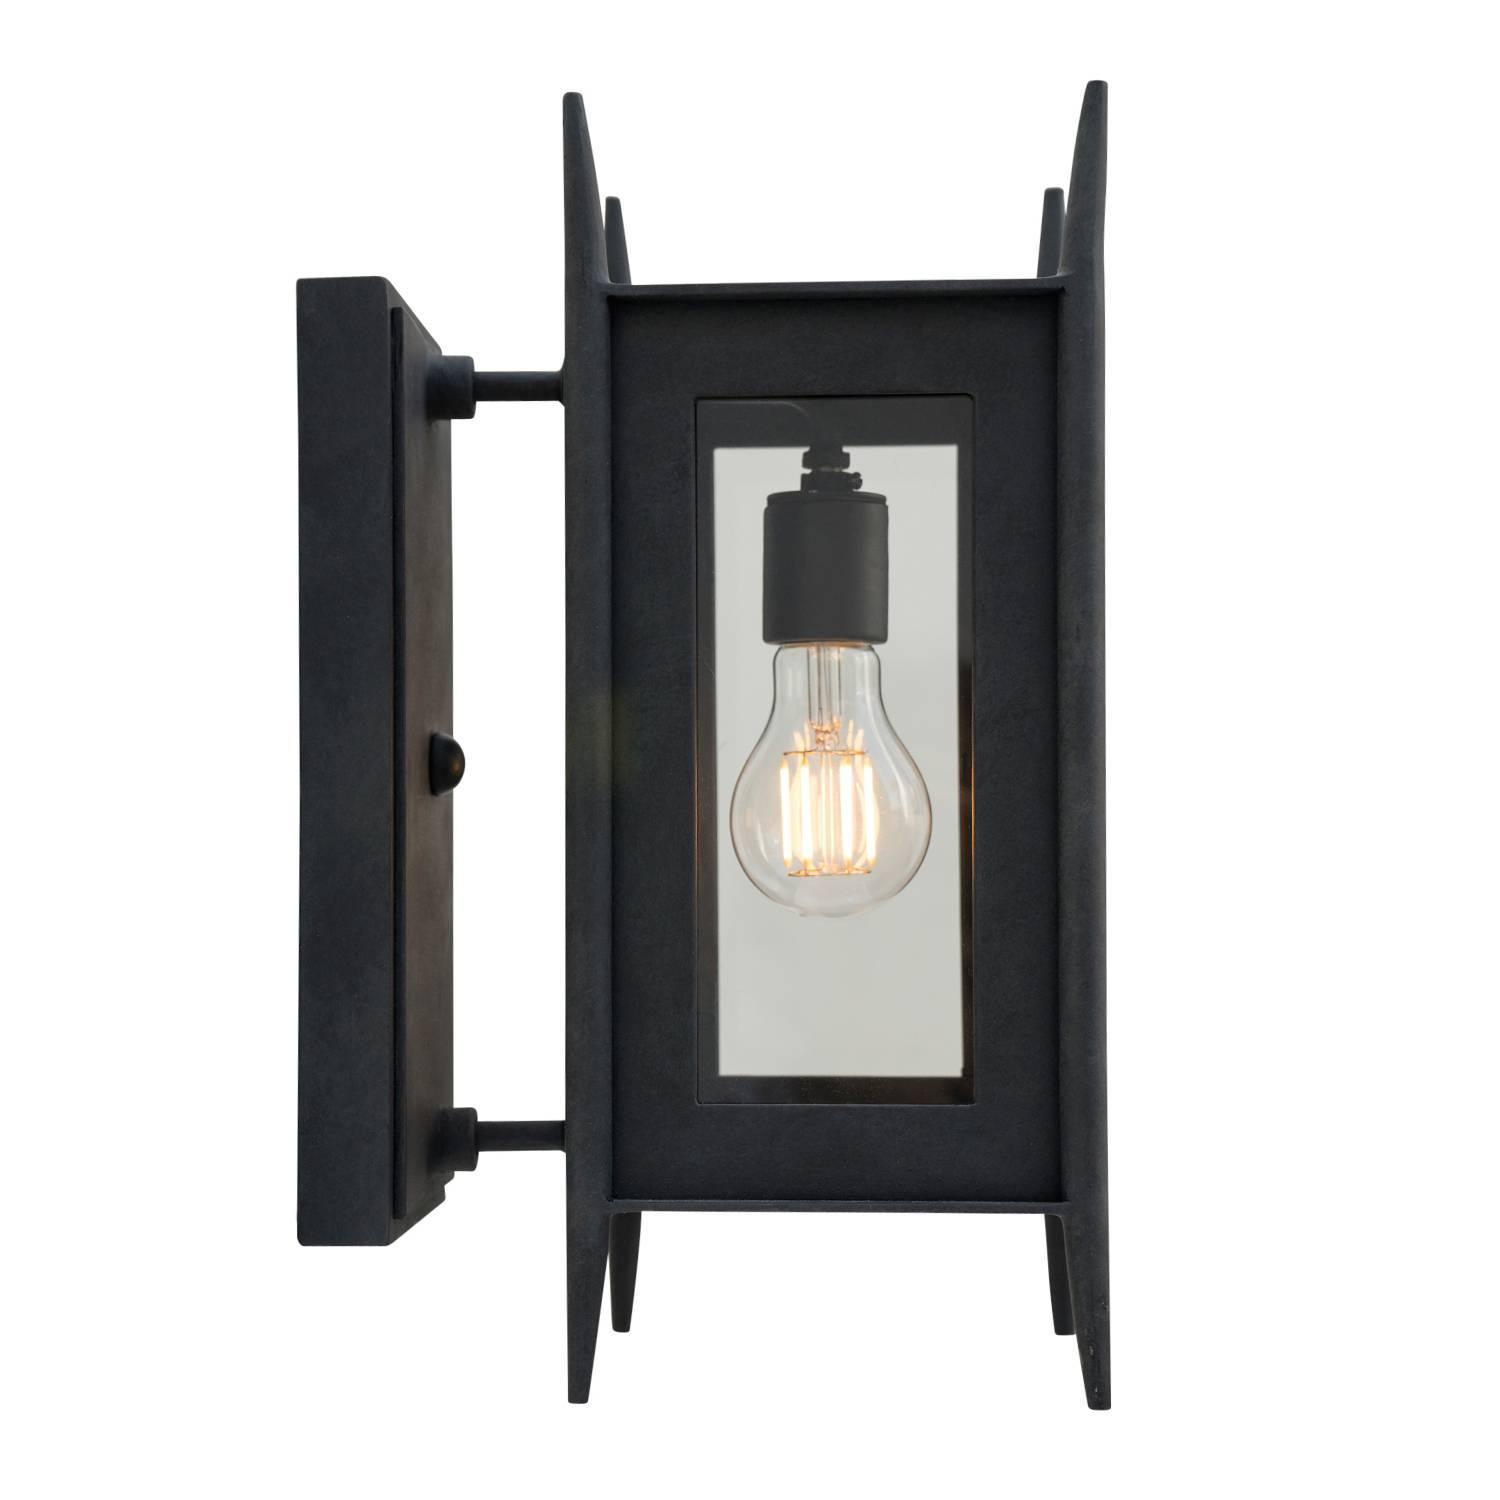 Iron Outdoor Wall Sconces : Modern Wrought Iron Exterior Wall Sconce Outdoor Lighting by Nathaniel Arnold For Sale at 1stdibs